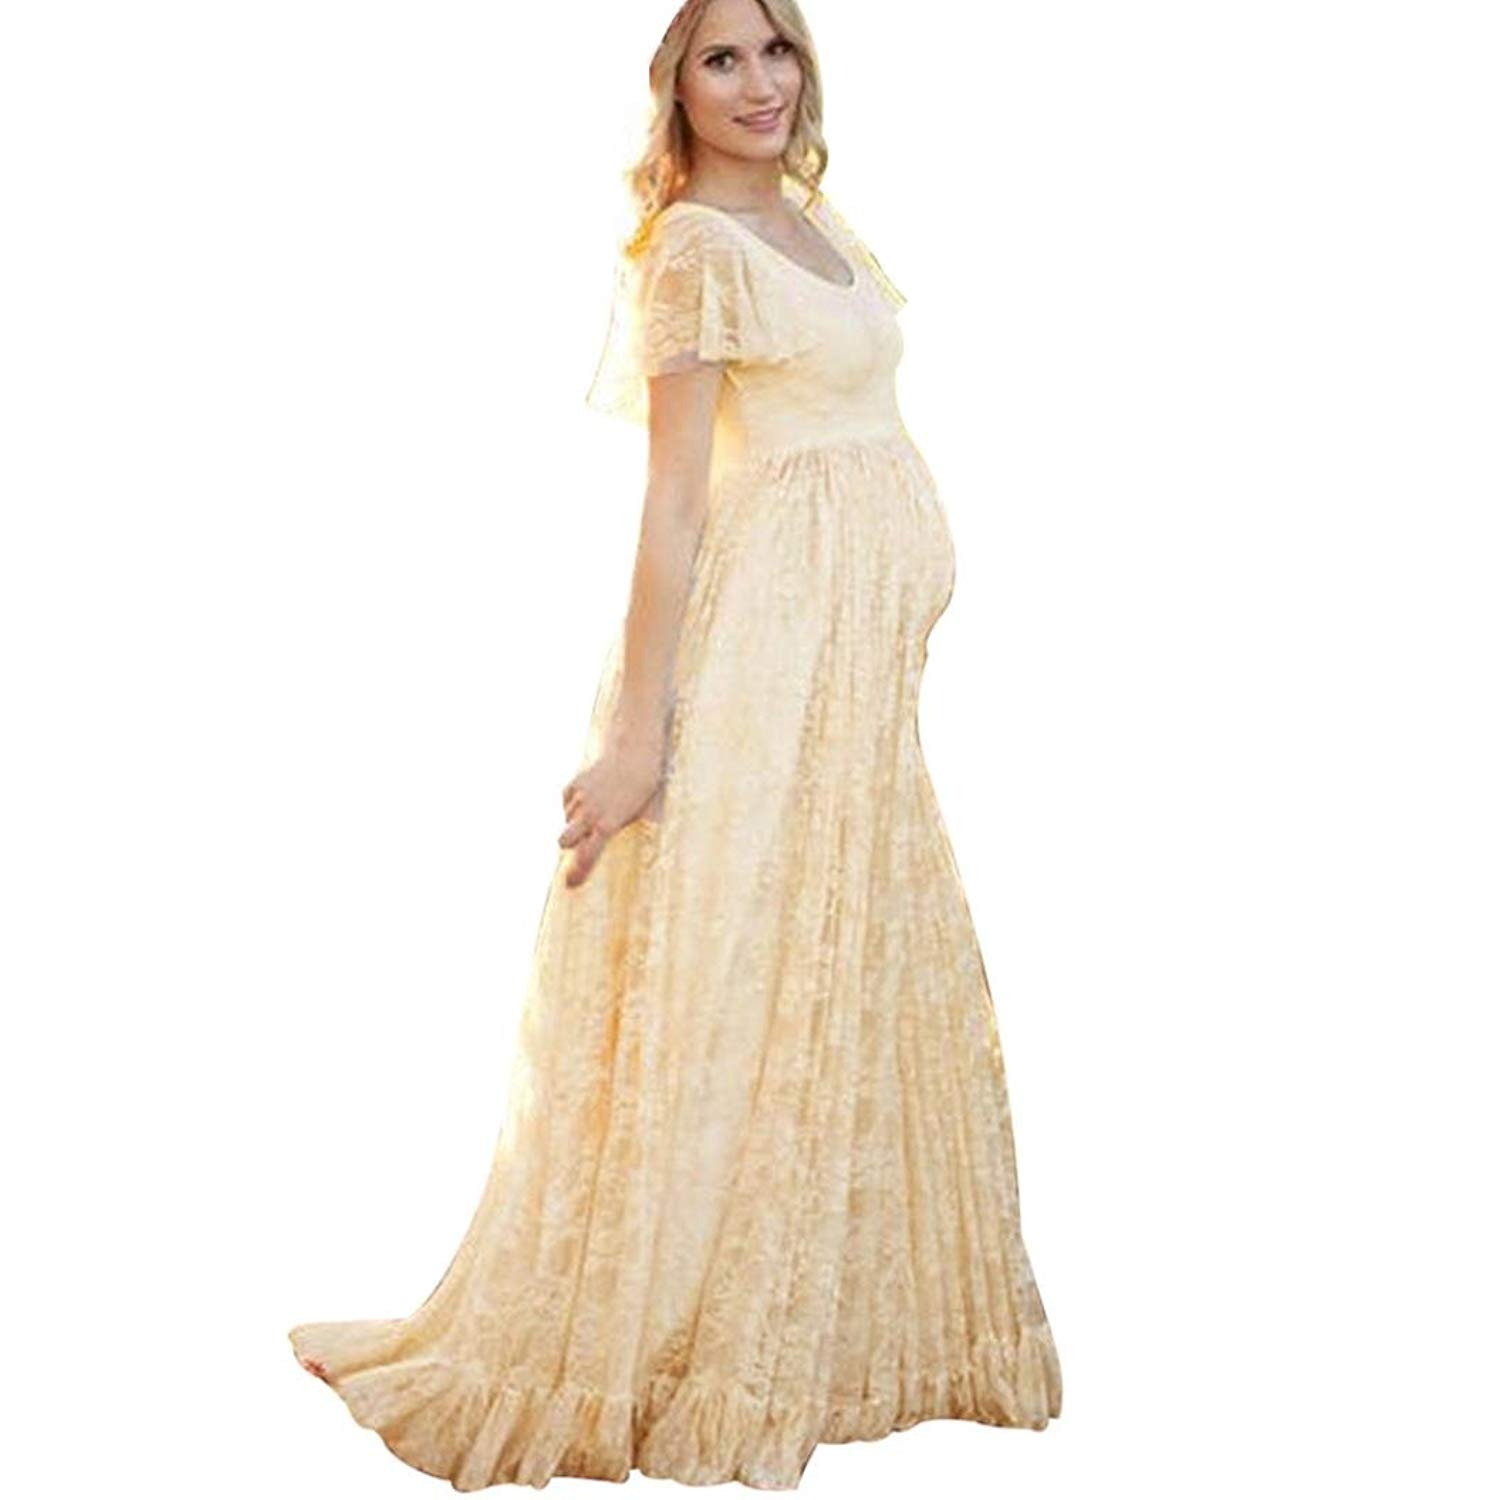 cdeca543c7a Maternity Dresses Fabal Women s Floral Lace Short Sleeve Photography Fly  Sleeves O Neck